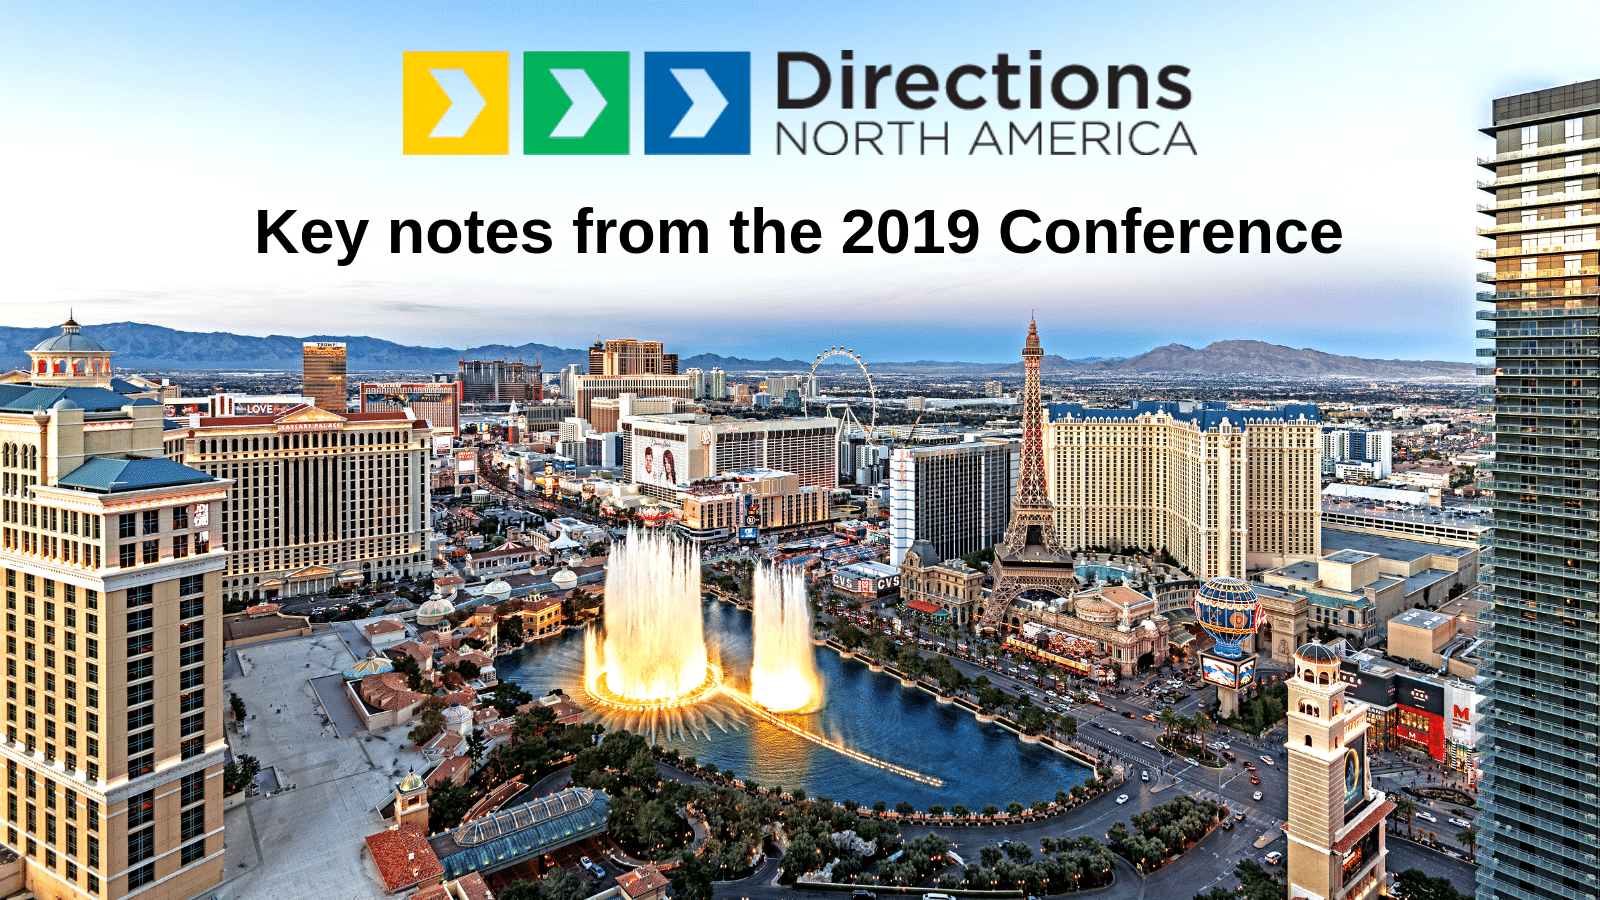 Directions North America: Key notes from the 2019 Conference